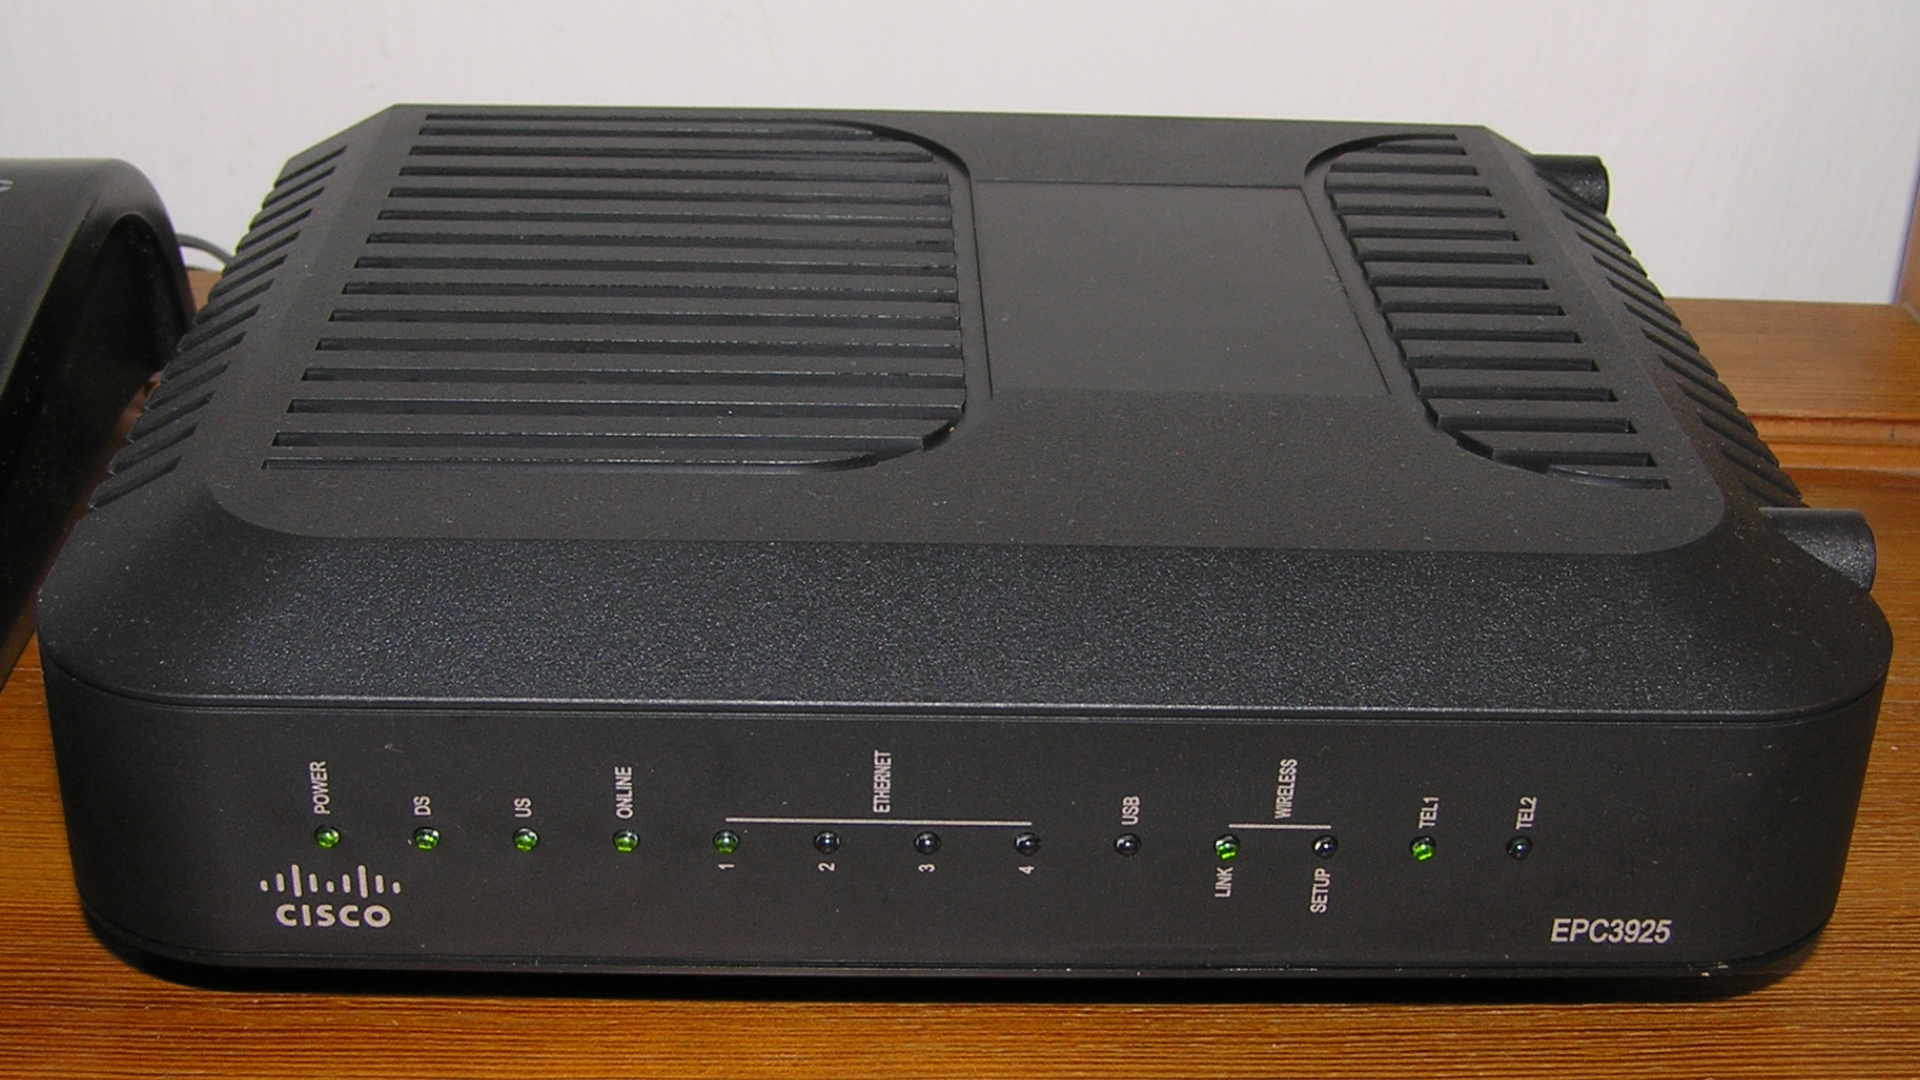 Residential gateway wikipedia cisco epc3925 eurodocsis 3 wireless residential gateway with embedded digital voice adapter publicscrutiny Choice Image